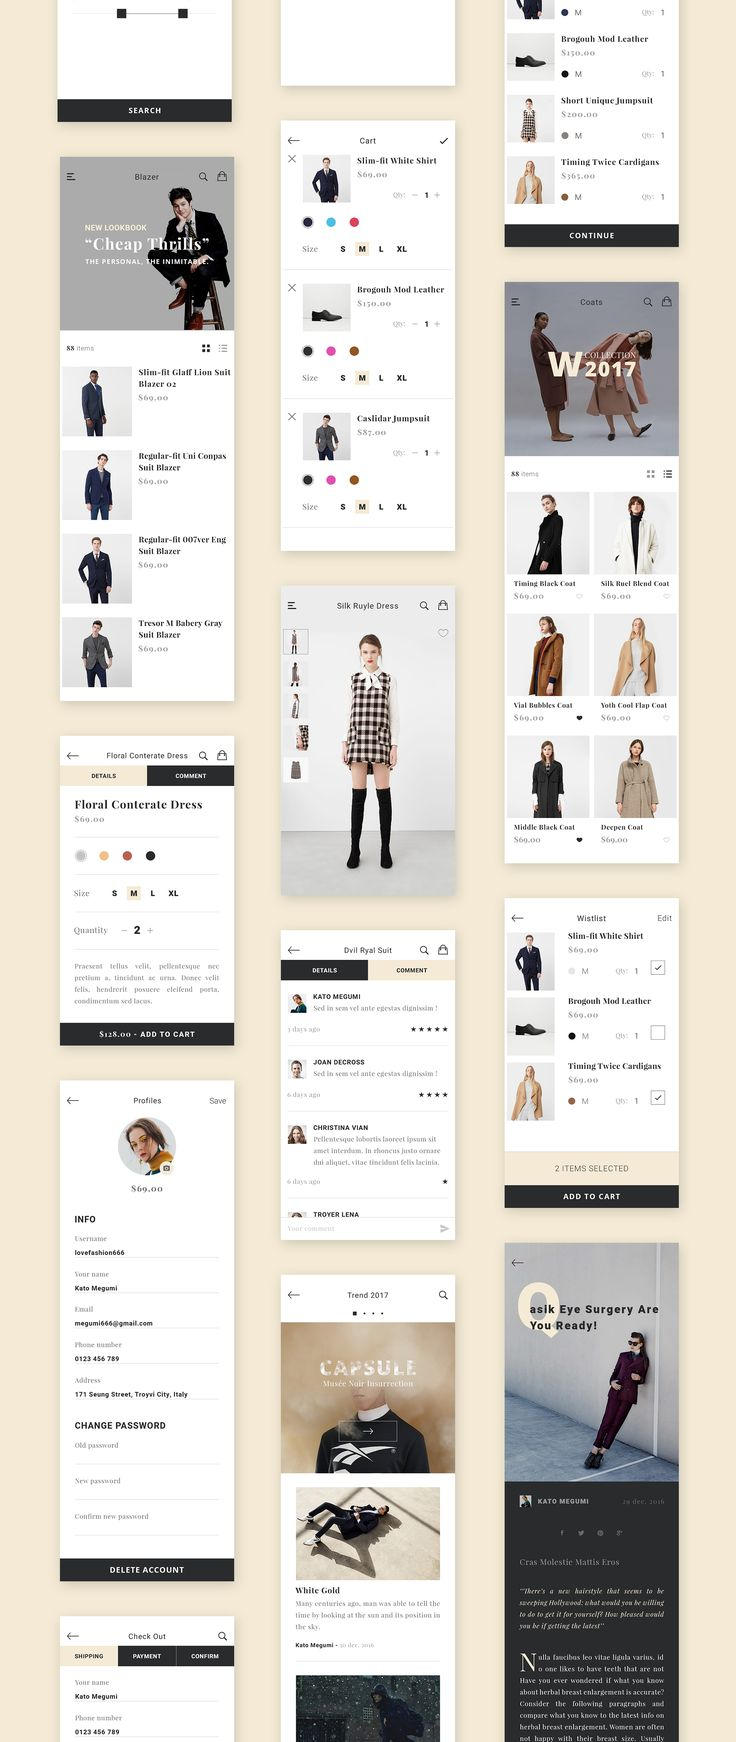 To know more log on to www.extentia.com (file://www.extentia.com/) #Extentia #iOS E-Commerce App UI Kit, Fashion App